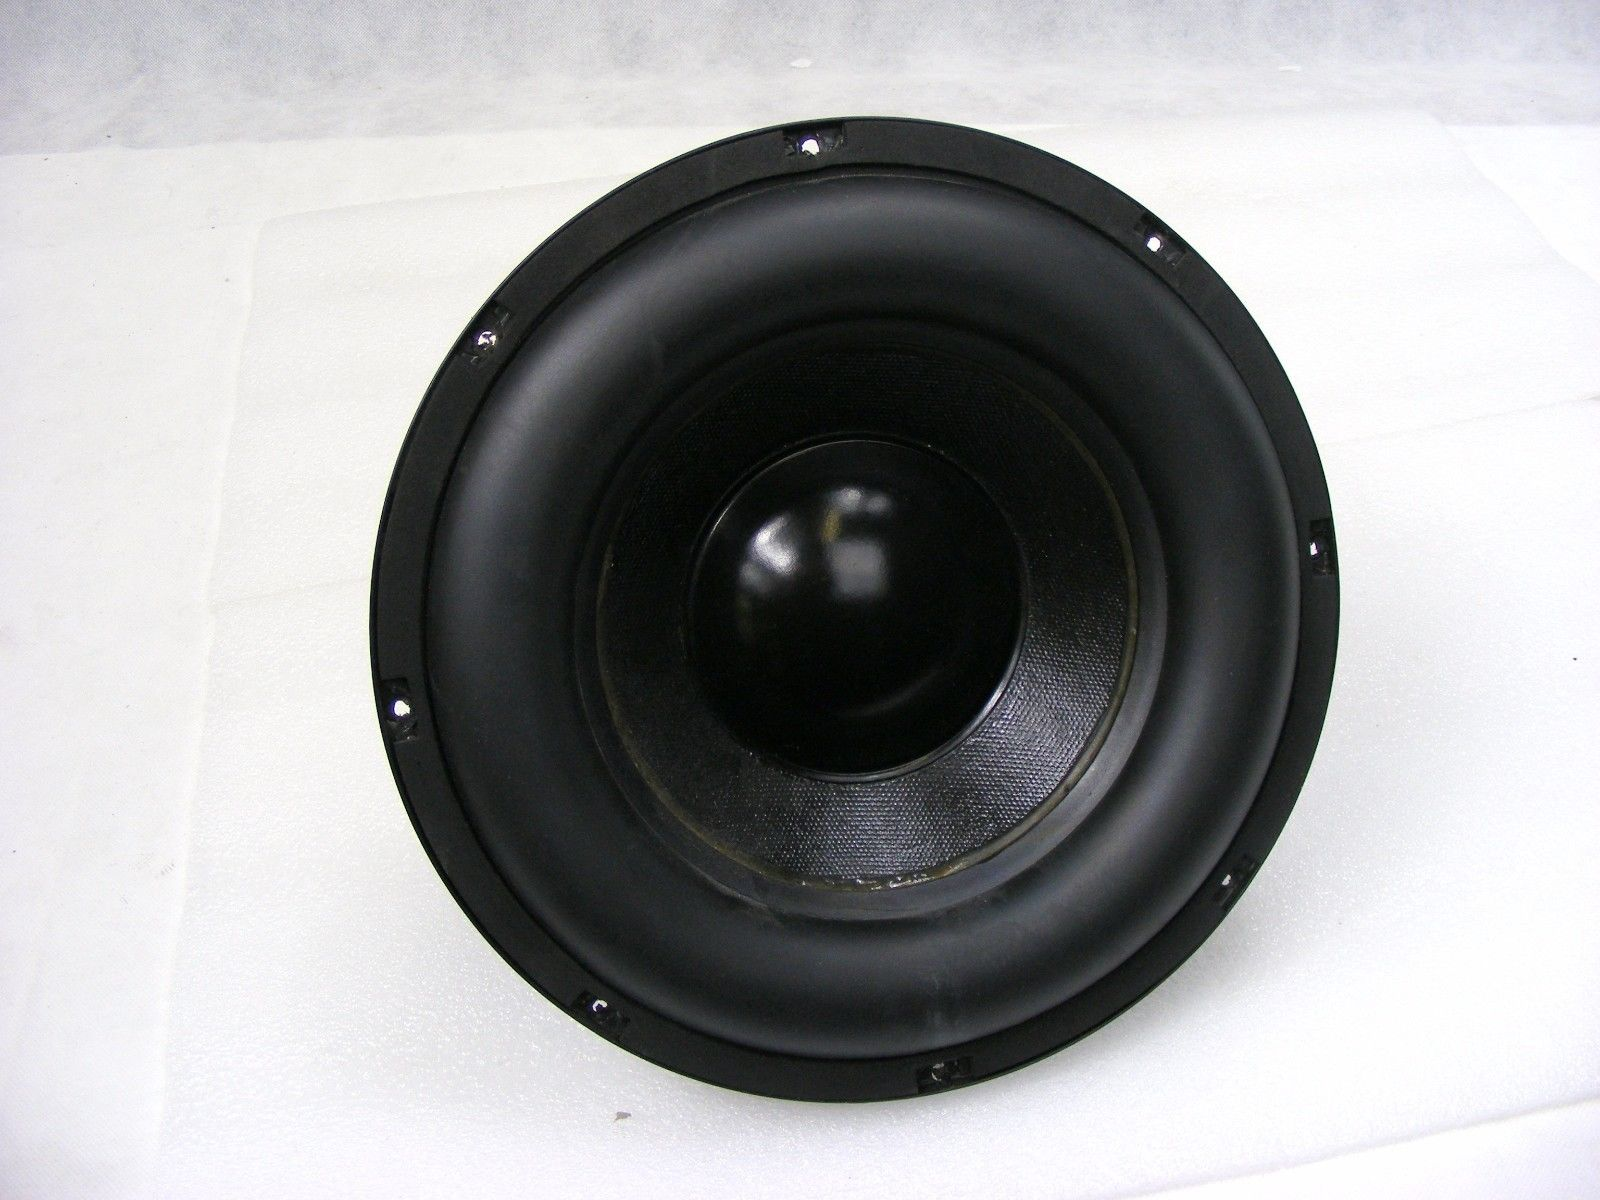 tannoy ts10 subwoofer replacement driver a100431 04rb tapatalk. Black Bedroom Furniture Sets. Home Design Ideas